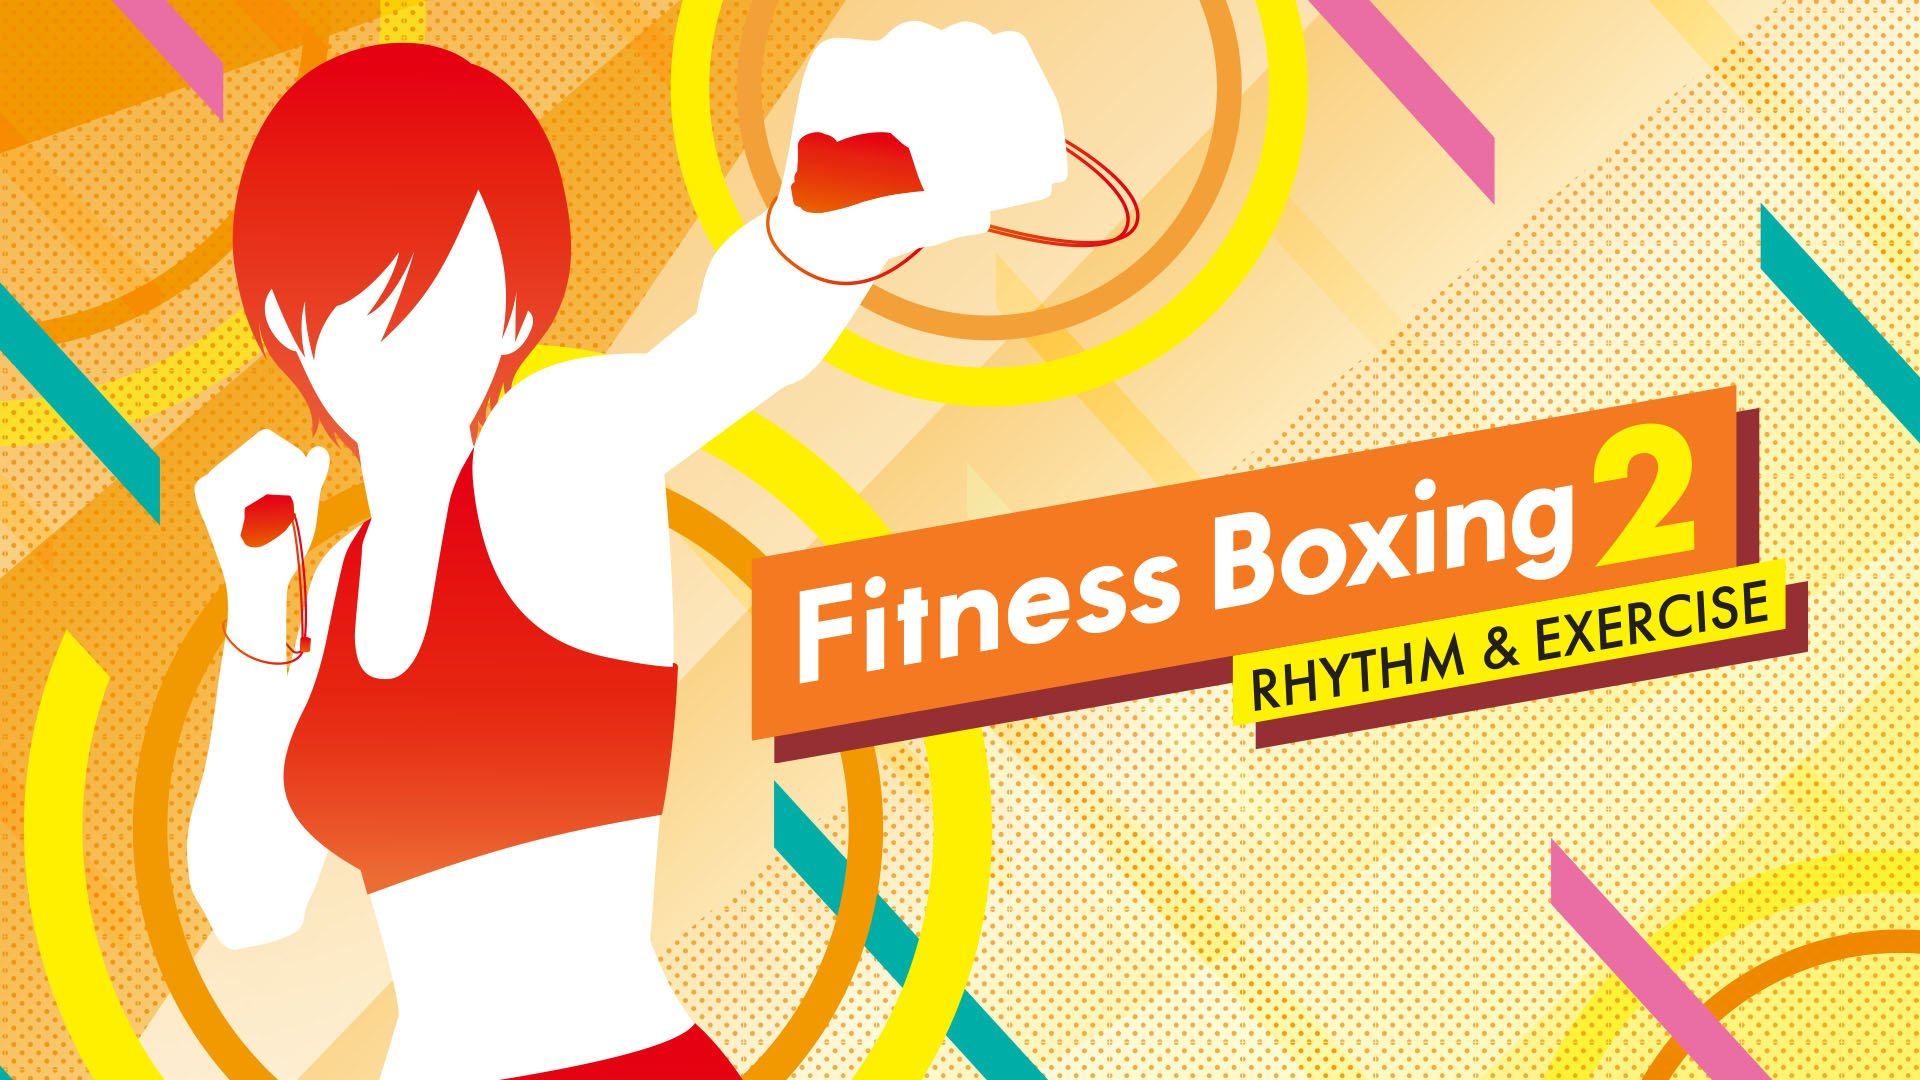 Jogos: Fitness Boxing 2: Rhythm & Exercise   Review